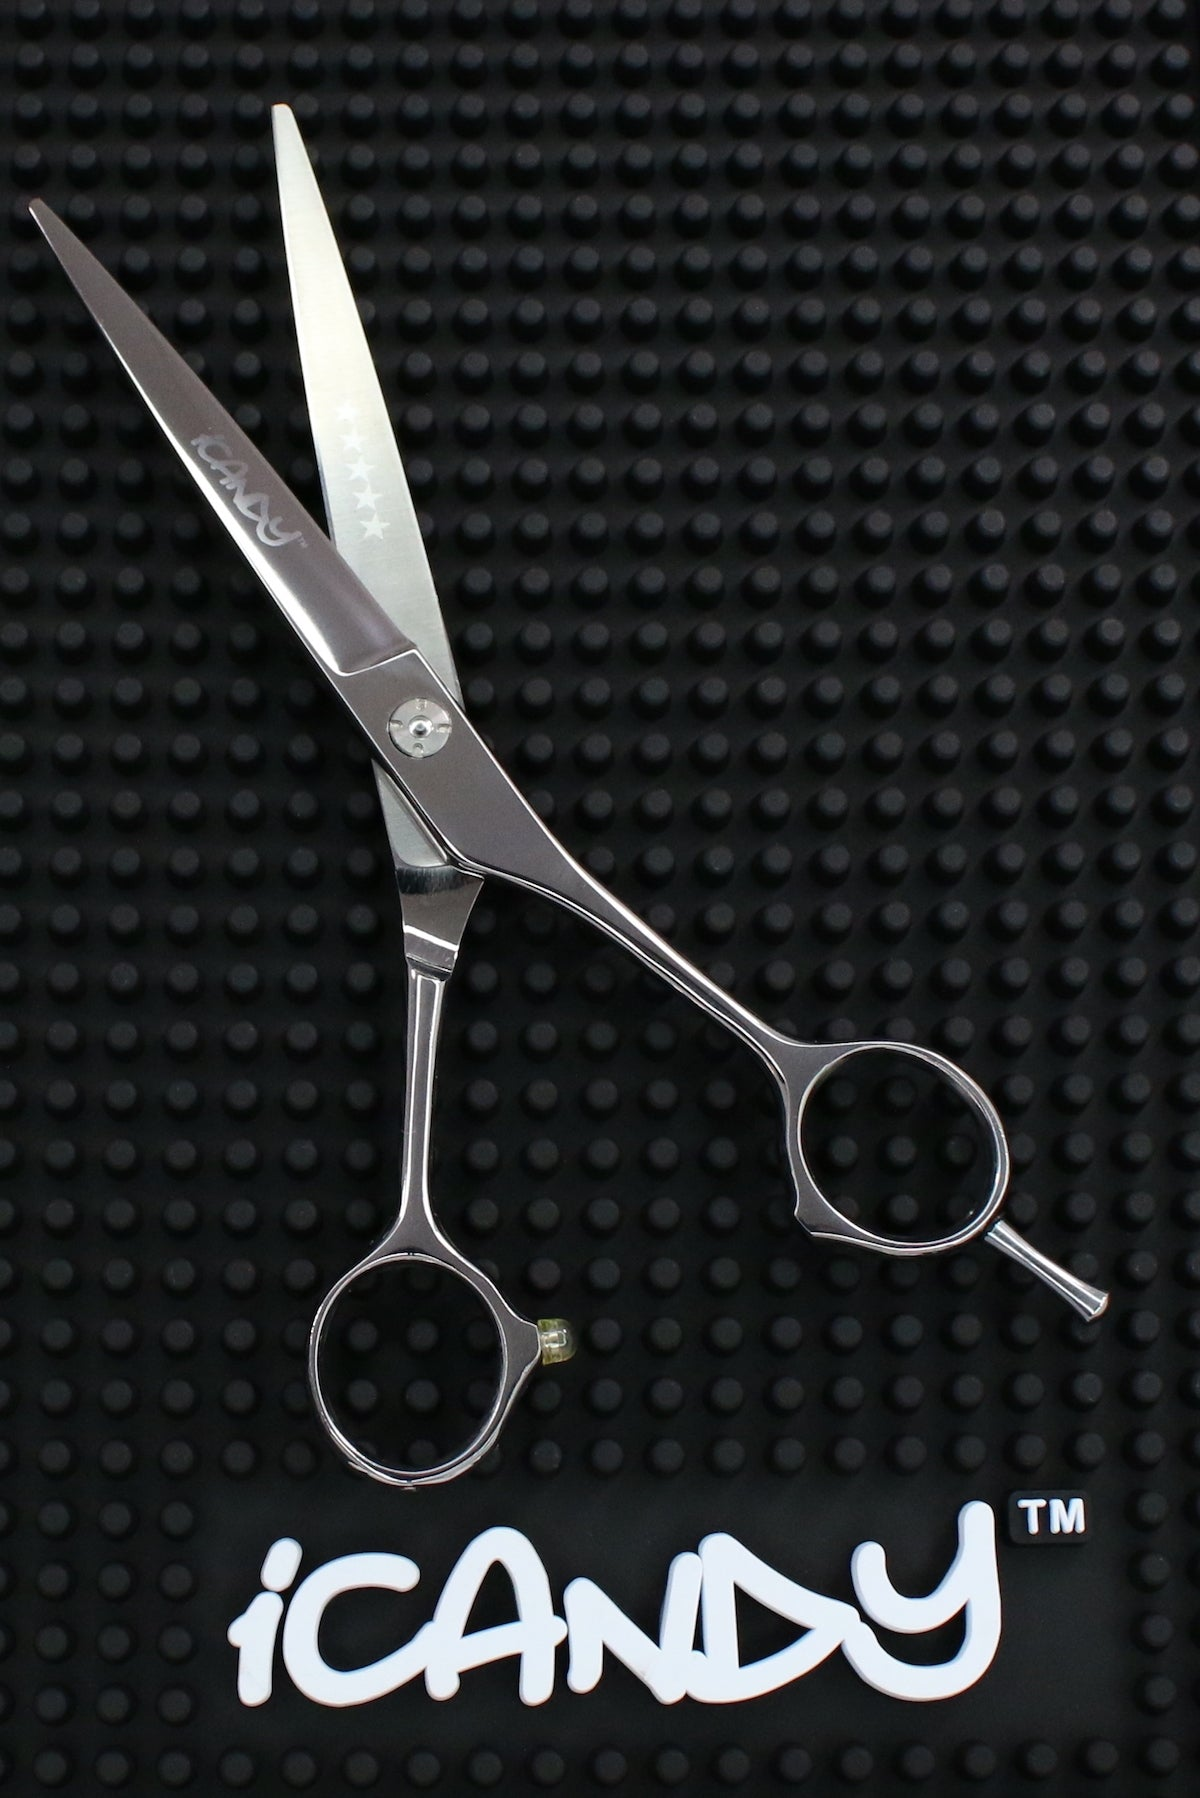 iCandy Barber Classic Scissors (6.5 inch) - iCandy Scissors